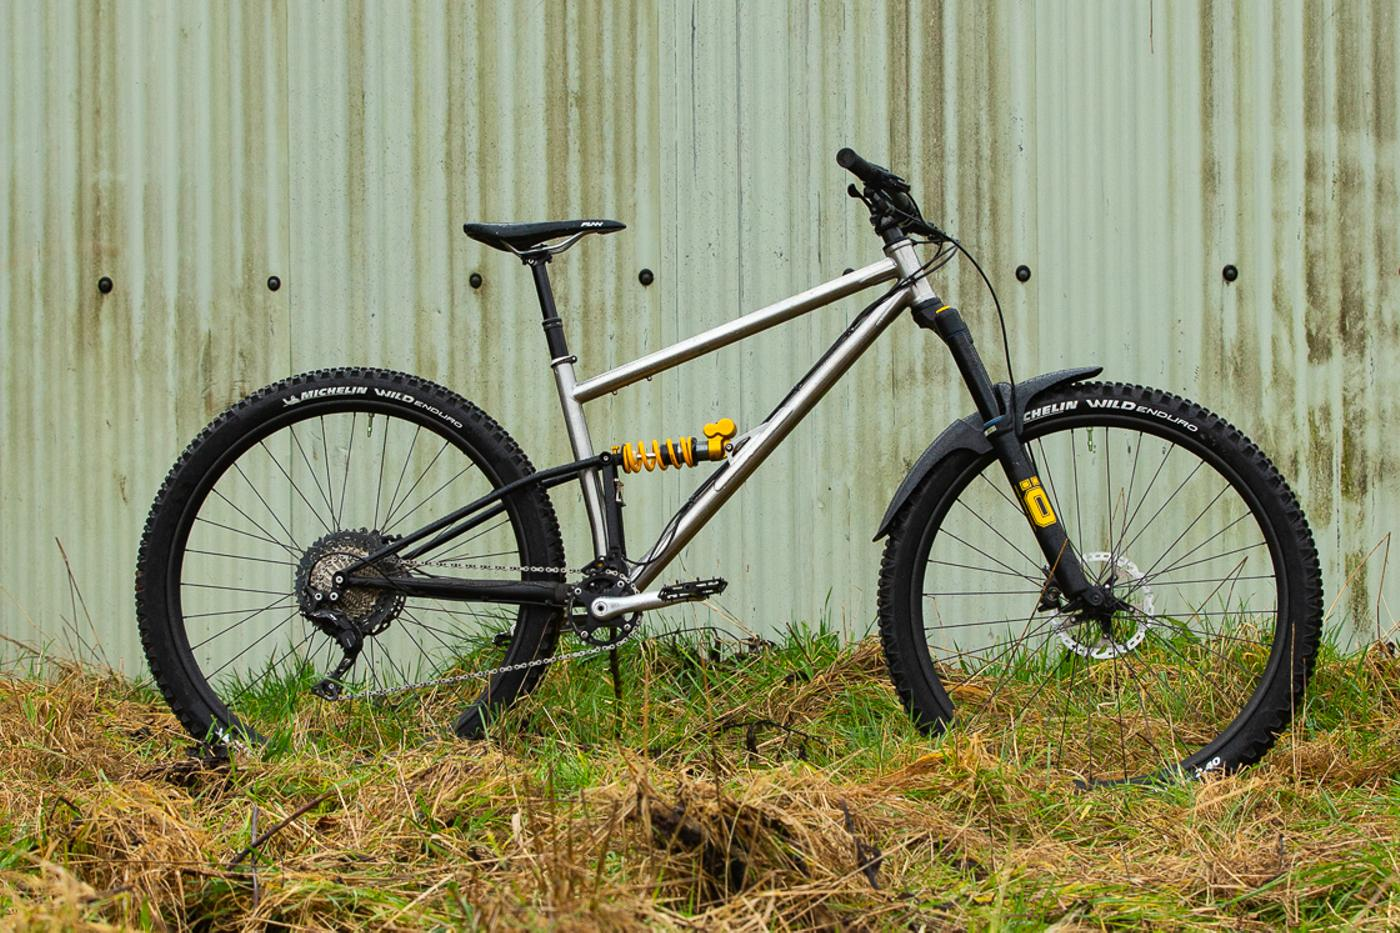 Starling Cycles Introduce the Stainless (Front Triangle) Murmur 29er